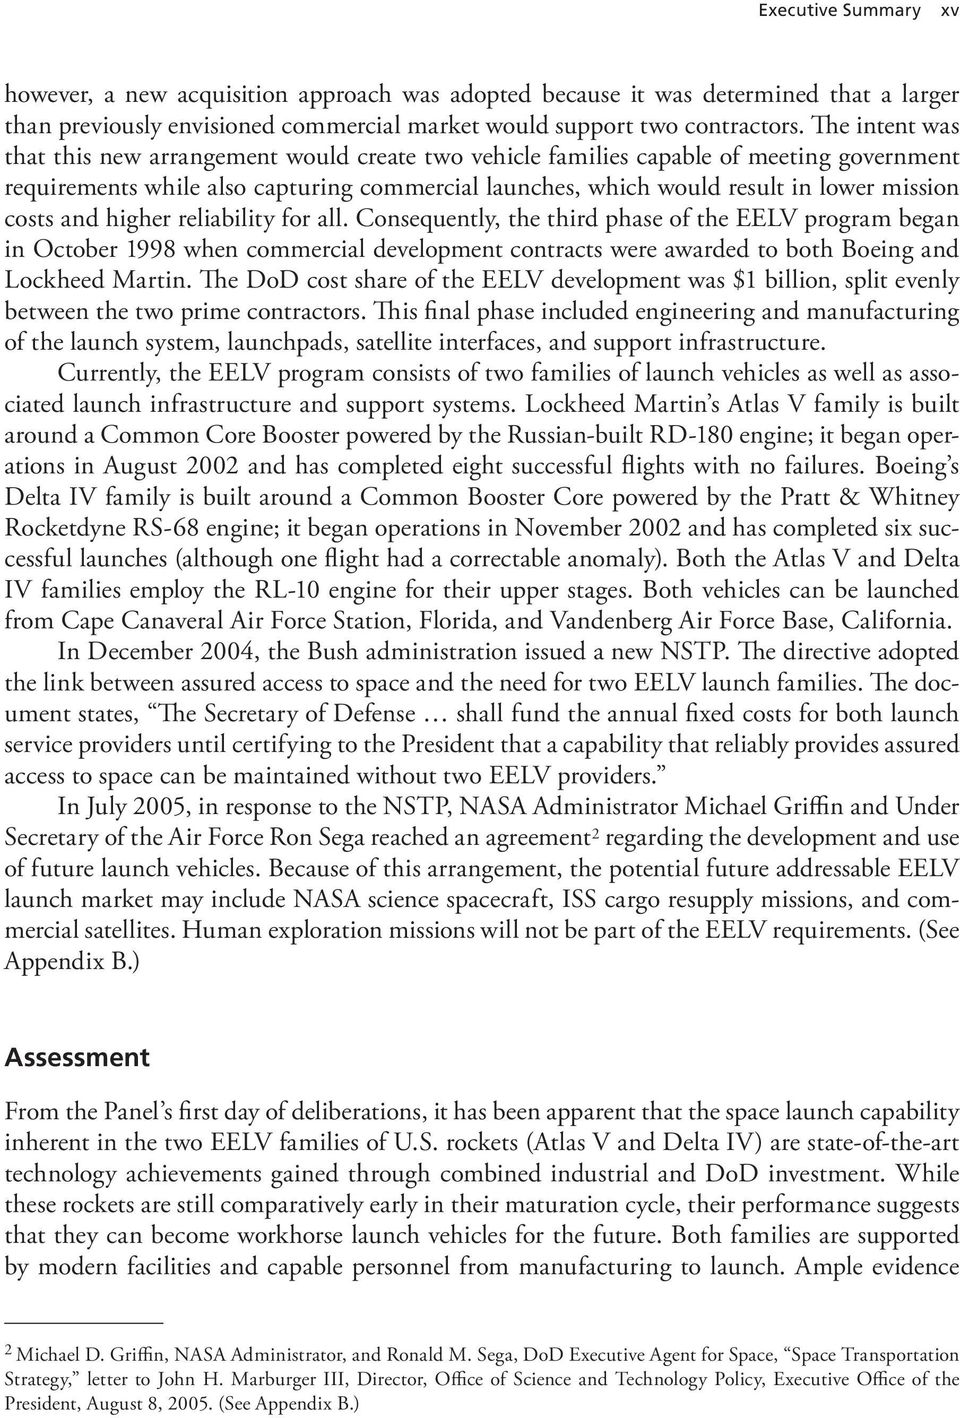 costs and higher reliability for all. Consequently, the third phase of the EELV program began in October 1998 when commercial development contracts were awarded to both Boeing and Lockheed Martin.